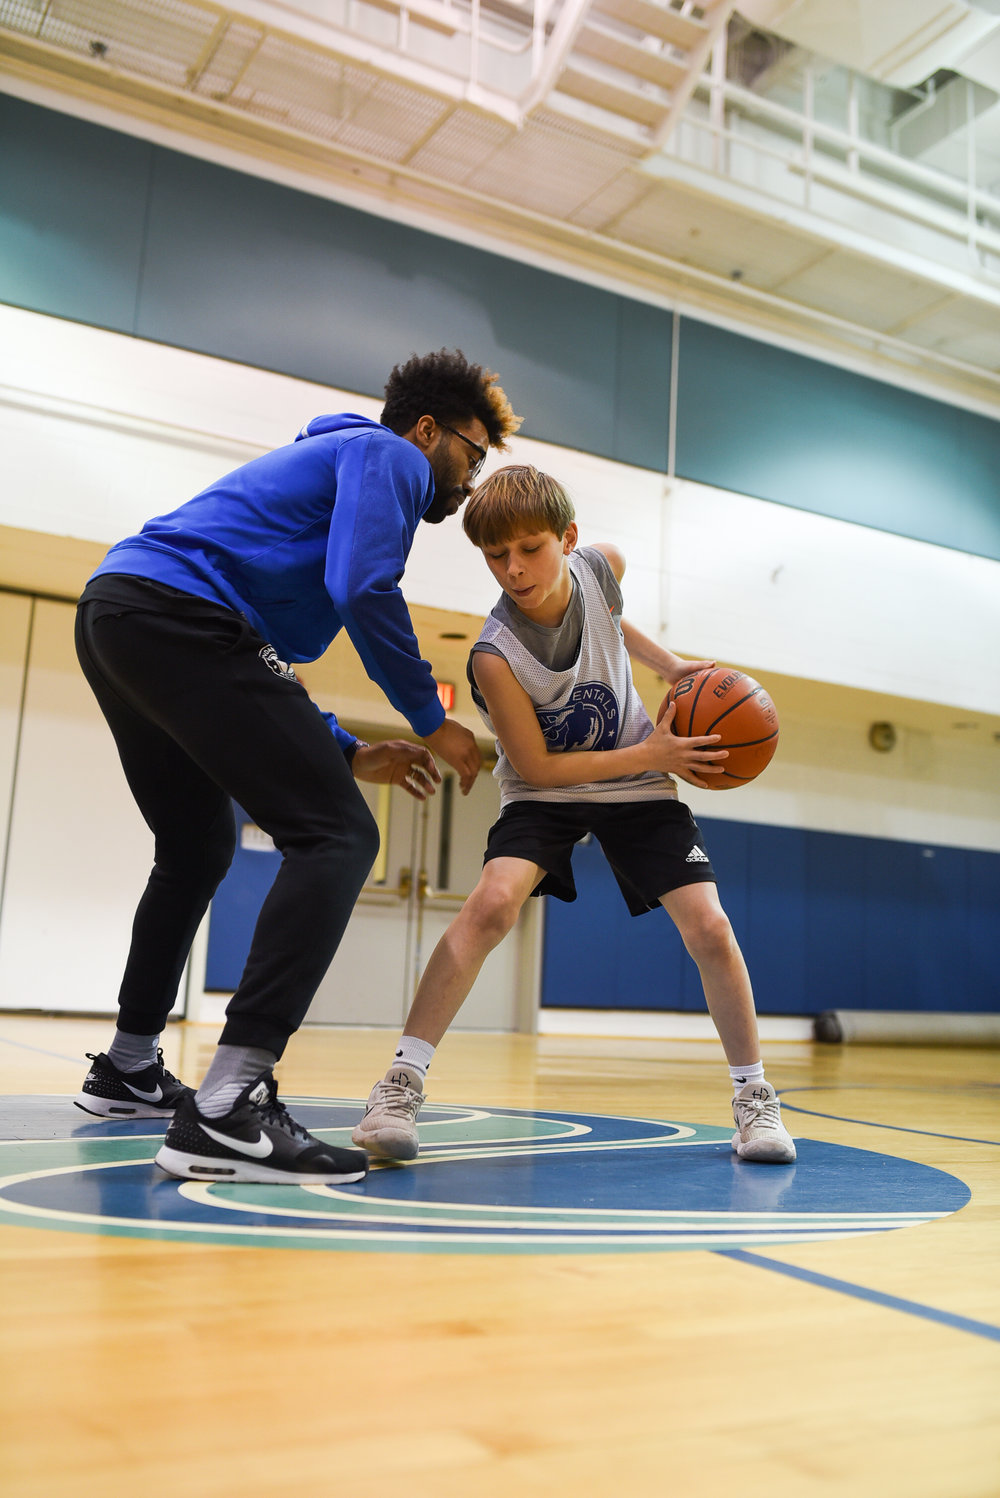 Basketball - Shooting, Dribble Moves, Footwork